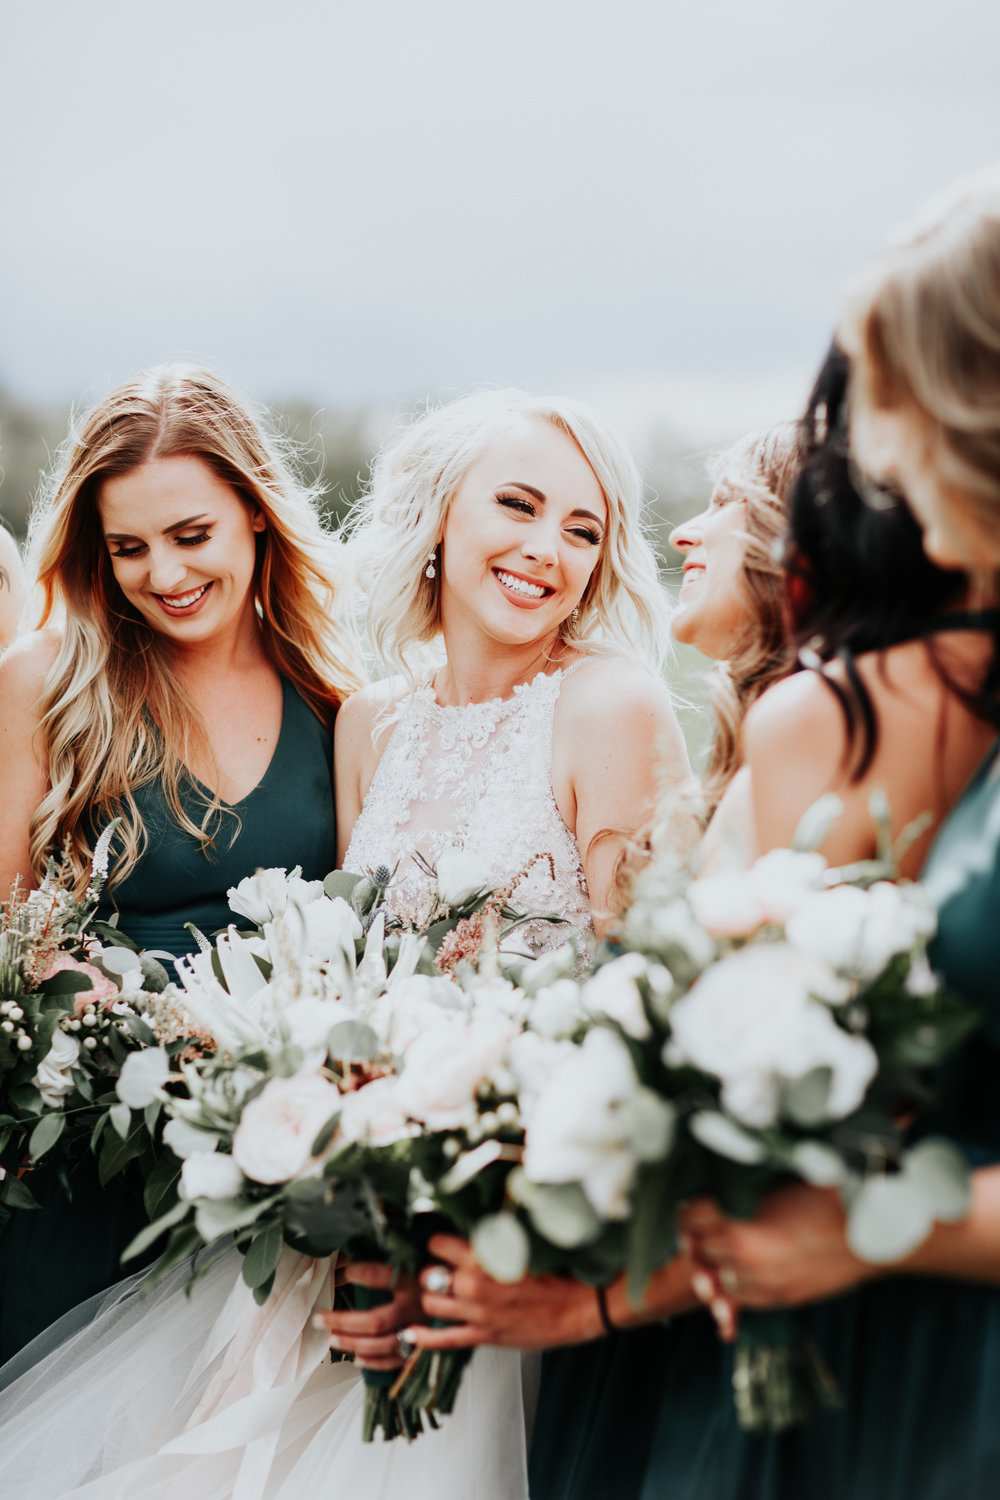 Taylor + Wyatt - The best part of working with this family was seeing all the love they had for each other. Taylor and Wyatt could not be more set up for success in the upcoming years. Working with Darcie (MOB) was a dream come true. Taylor gave me design freedom when it came to her floral concepts which allowed me to sneak in a few surprises. A few of my favorite details were all the greenery we used on the tables, deer sheds from the groom, the brides signature Huckleberry Lemonade drink (I'm a sucker for anything Huckleberry) and the sunset pictures that we didn't even think we were going to get from the talented Alex Lasota.Planning + Floral